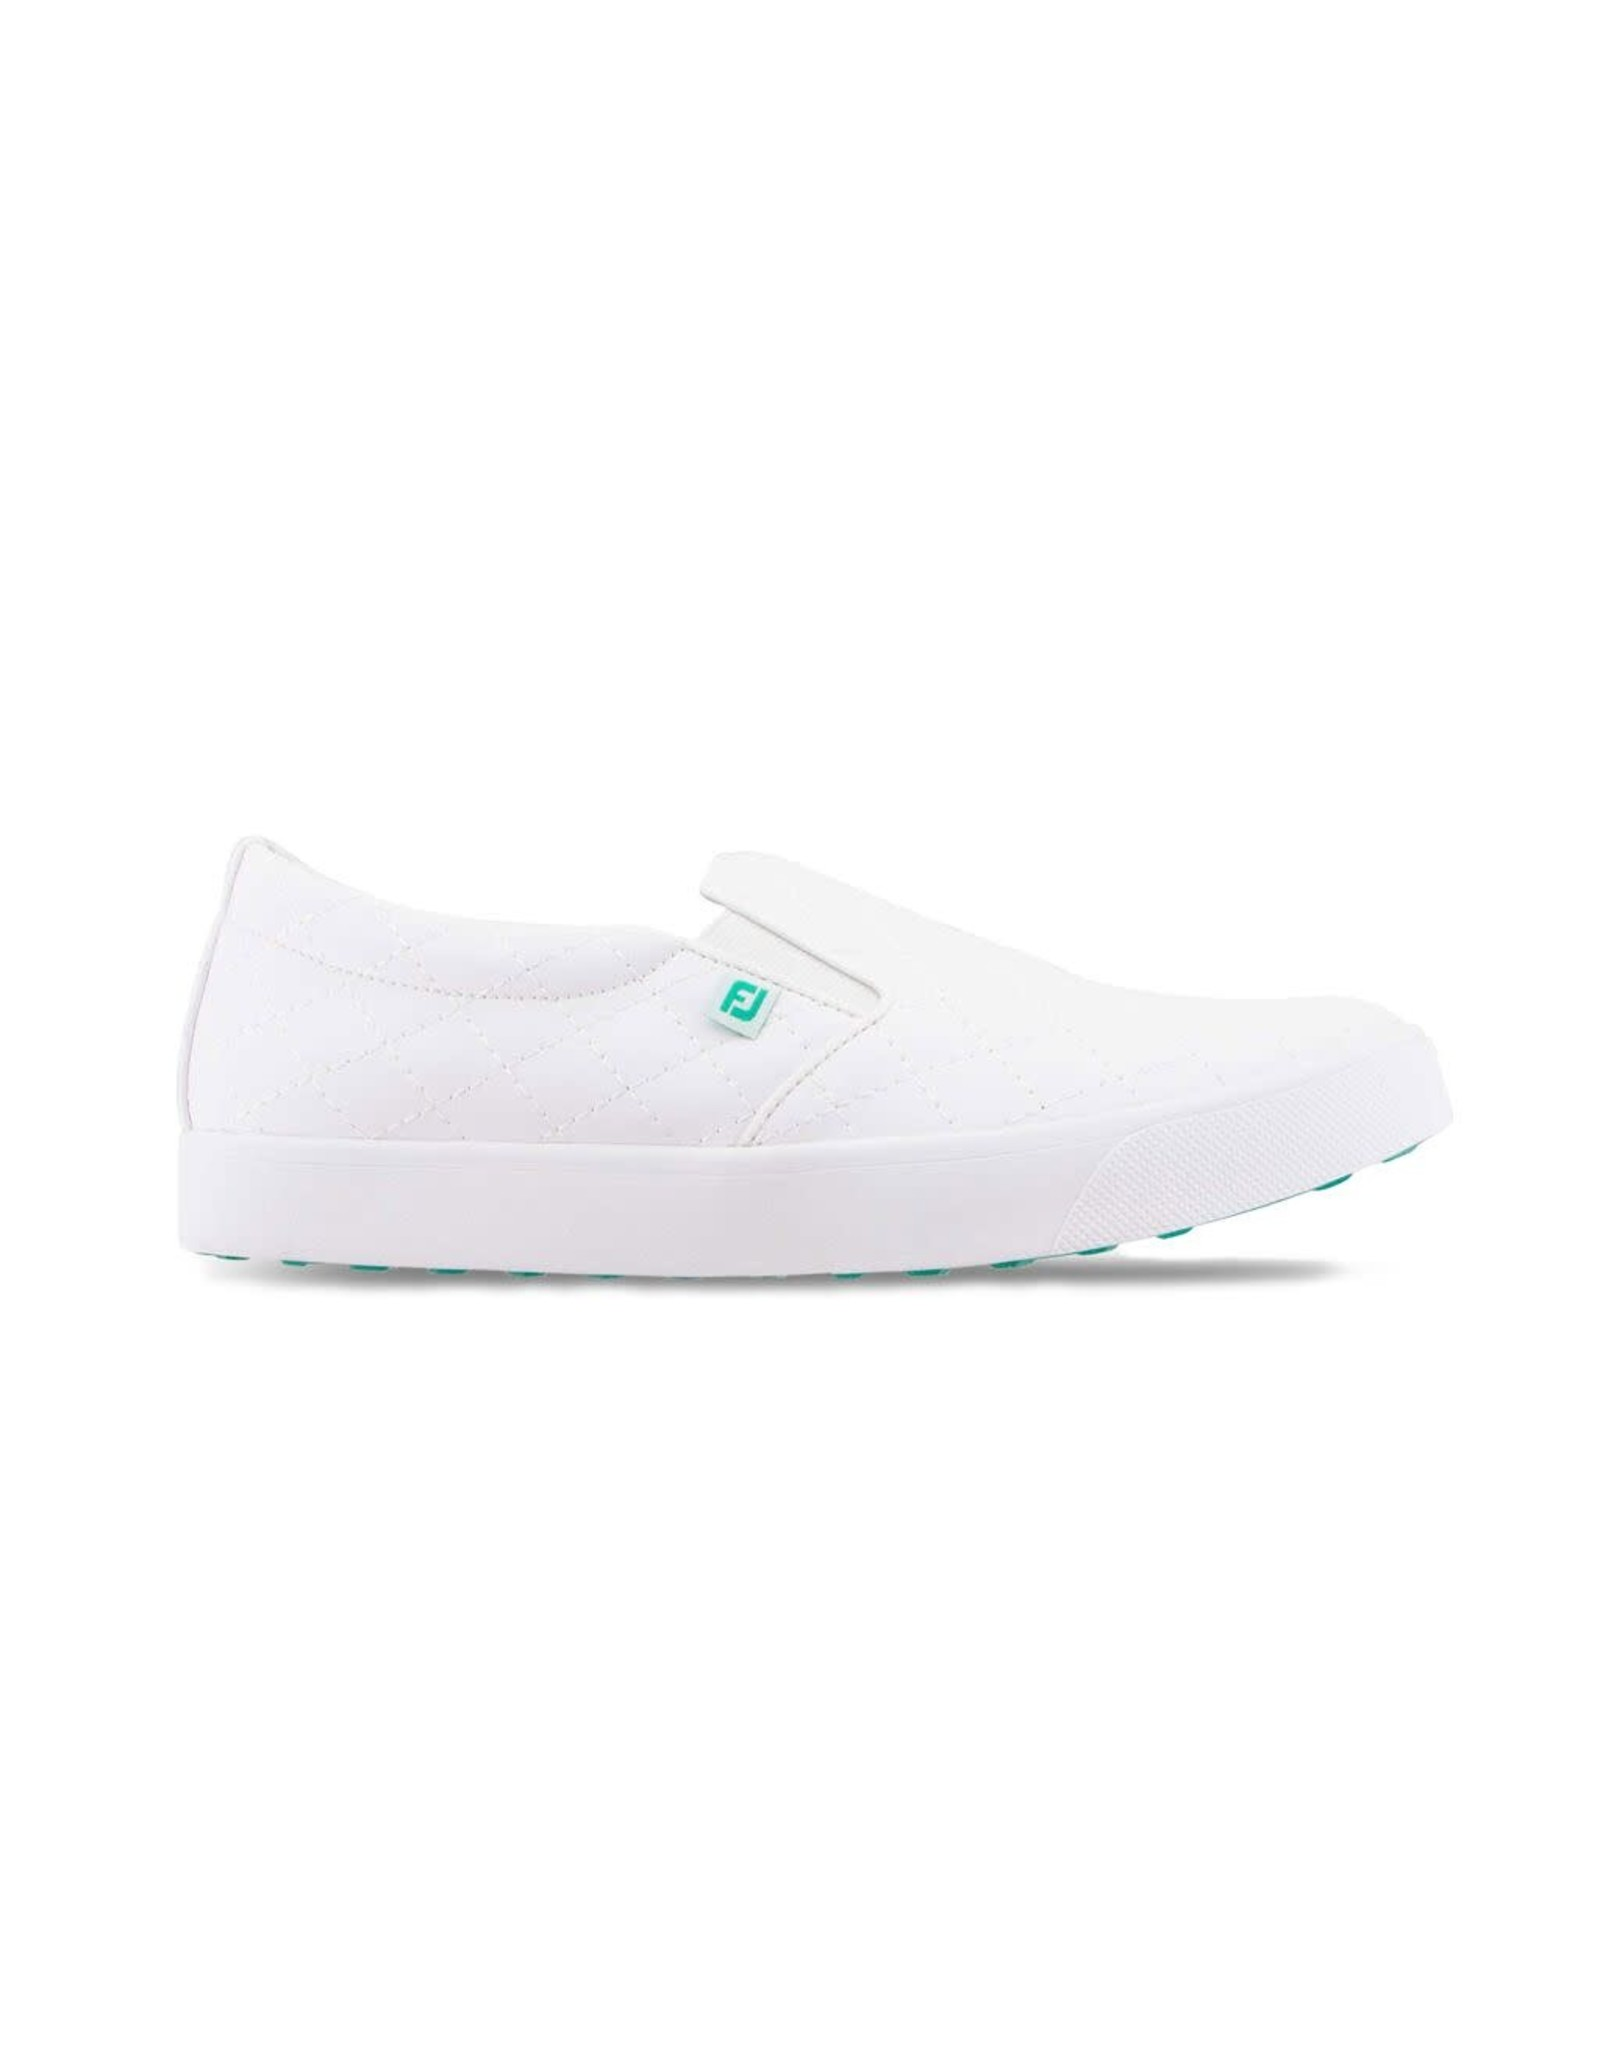 FJ FJ Sport Retro Women's White